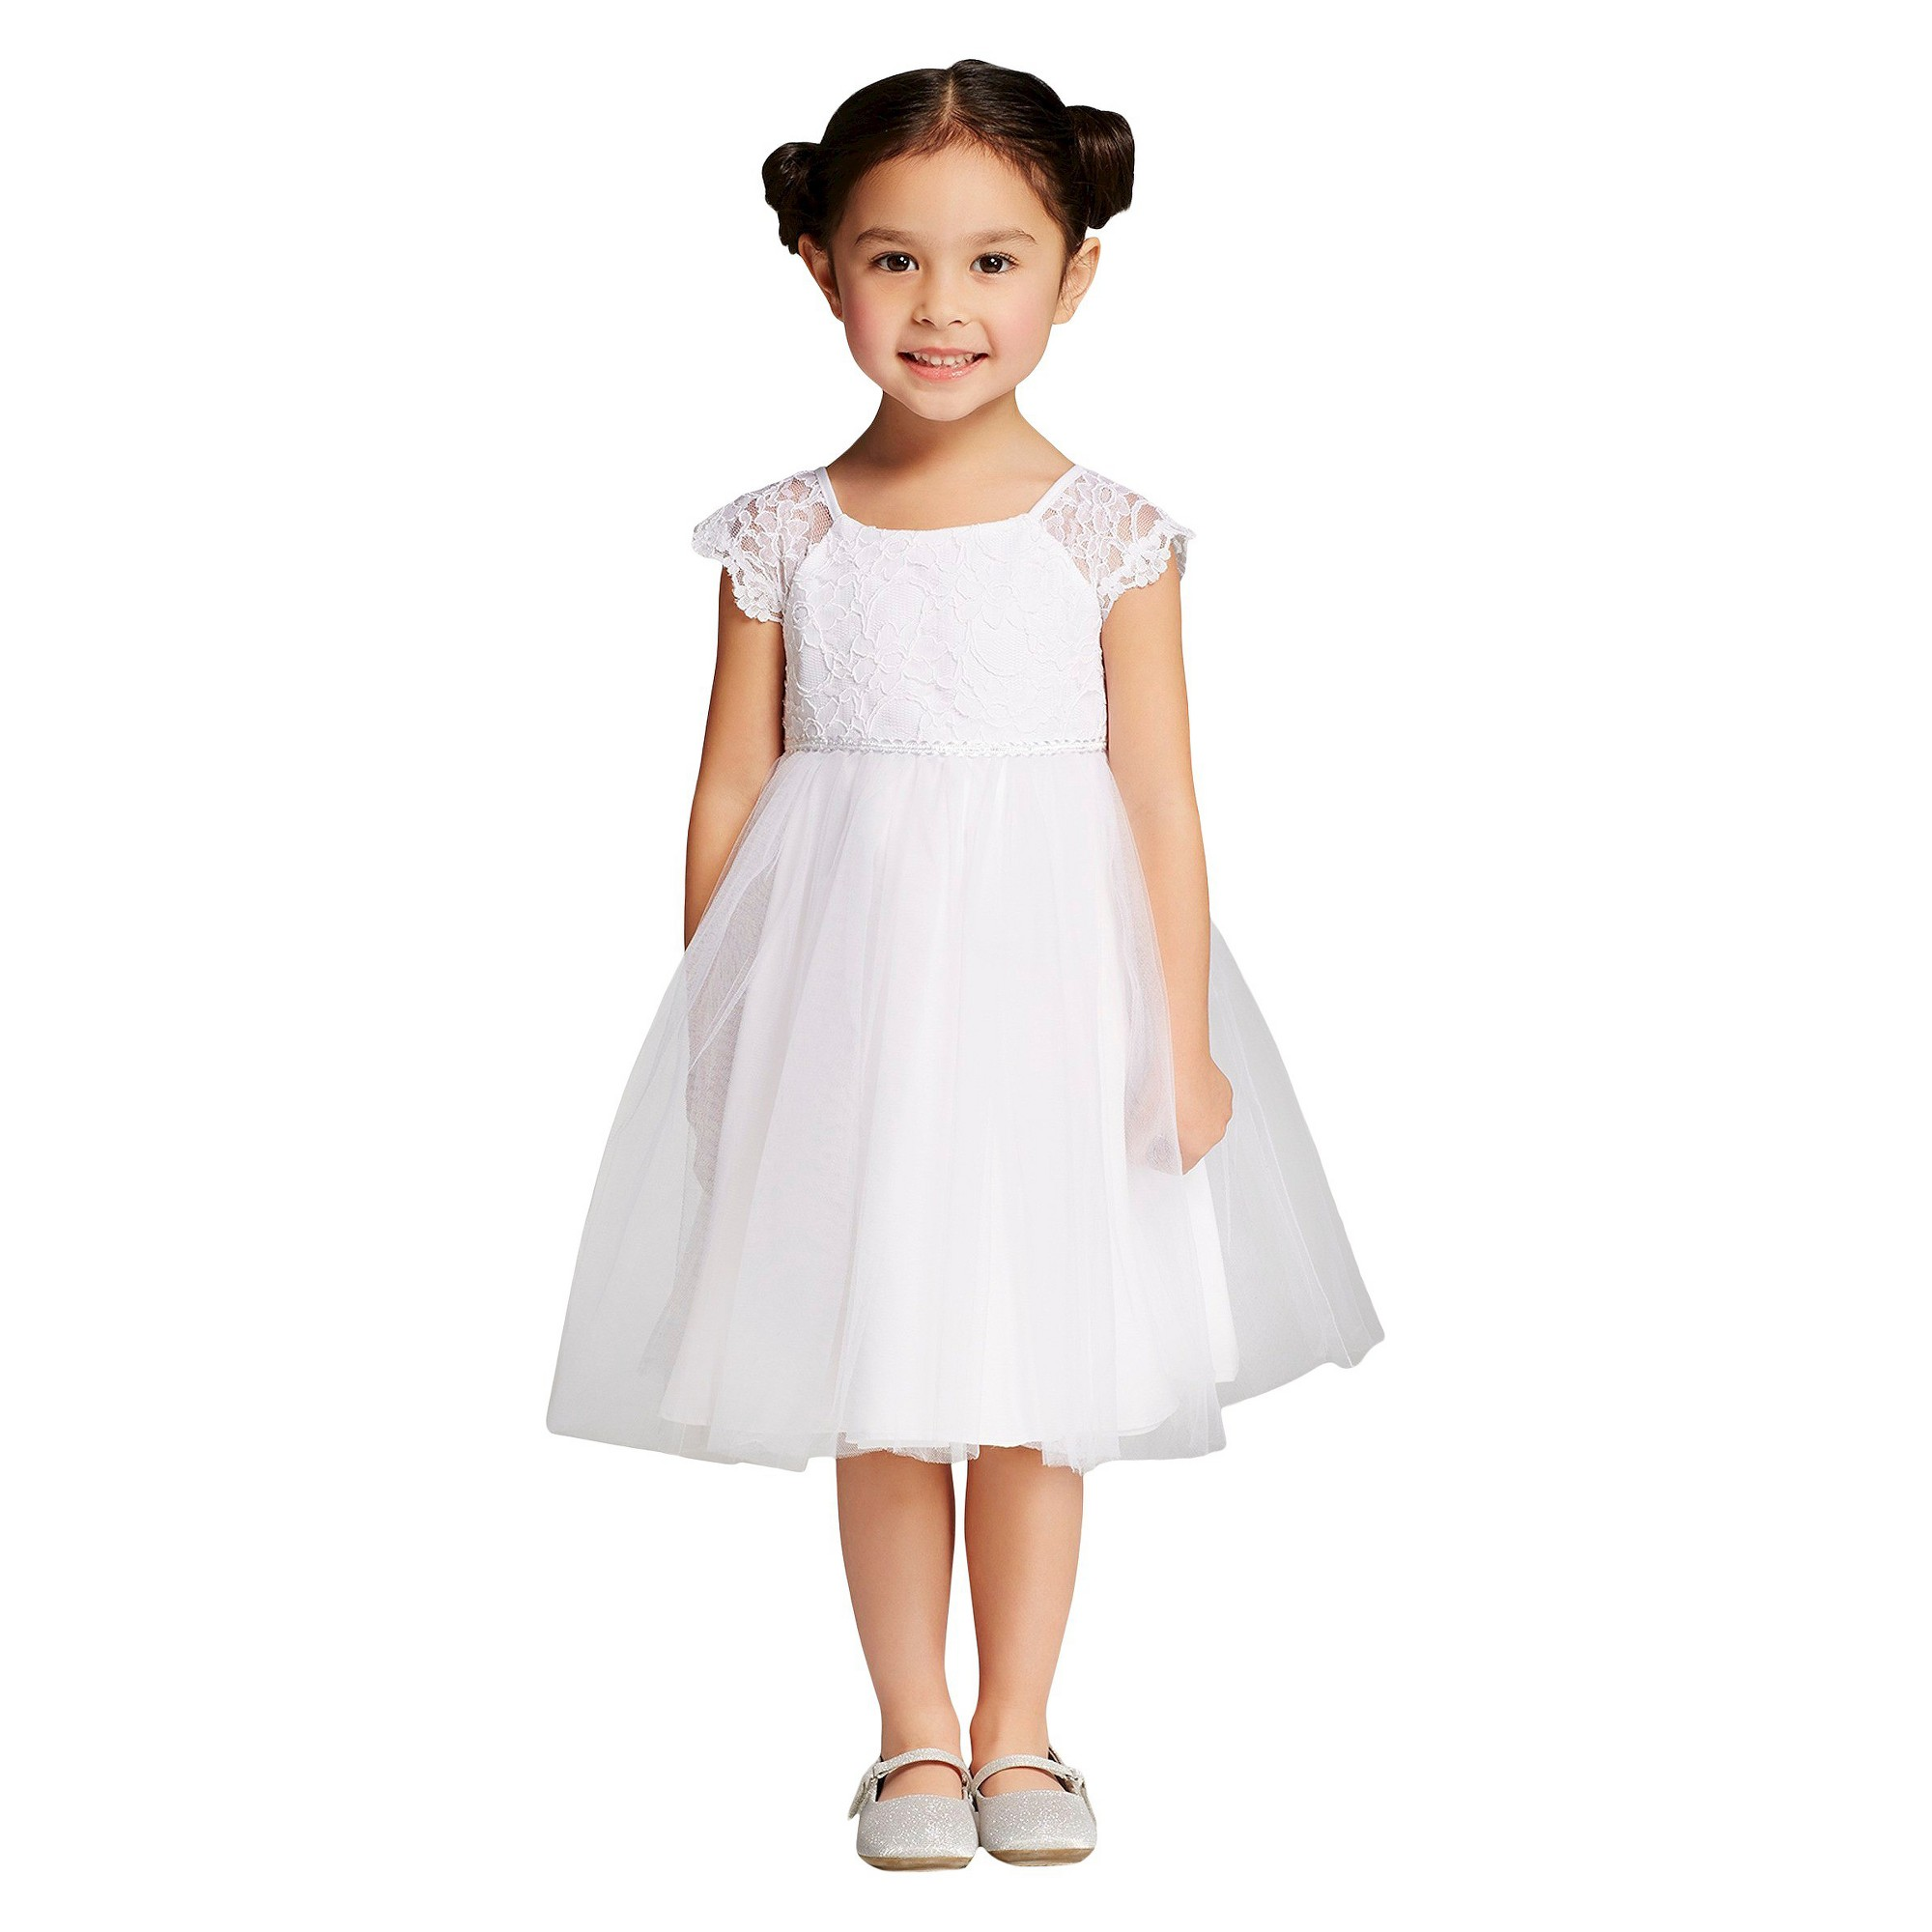 8a2673a030c2d Toddler Girls' Lace and Tulle Flower Girl Dress Tevolio - White 2T ...